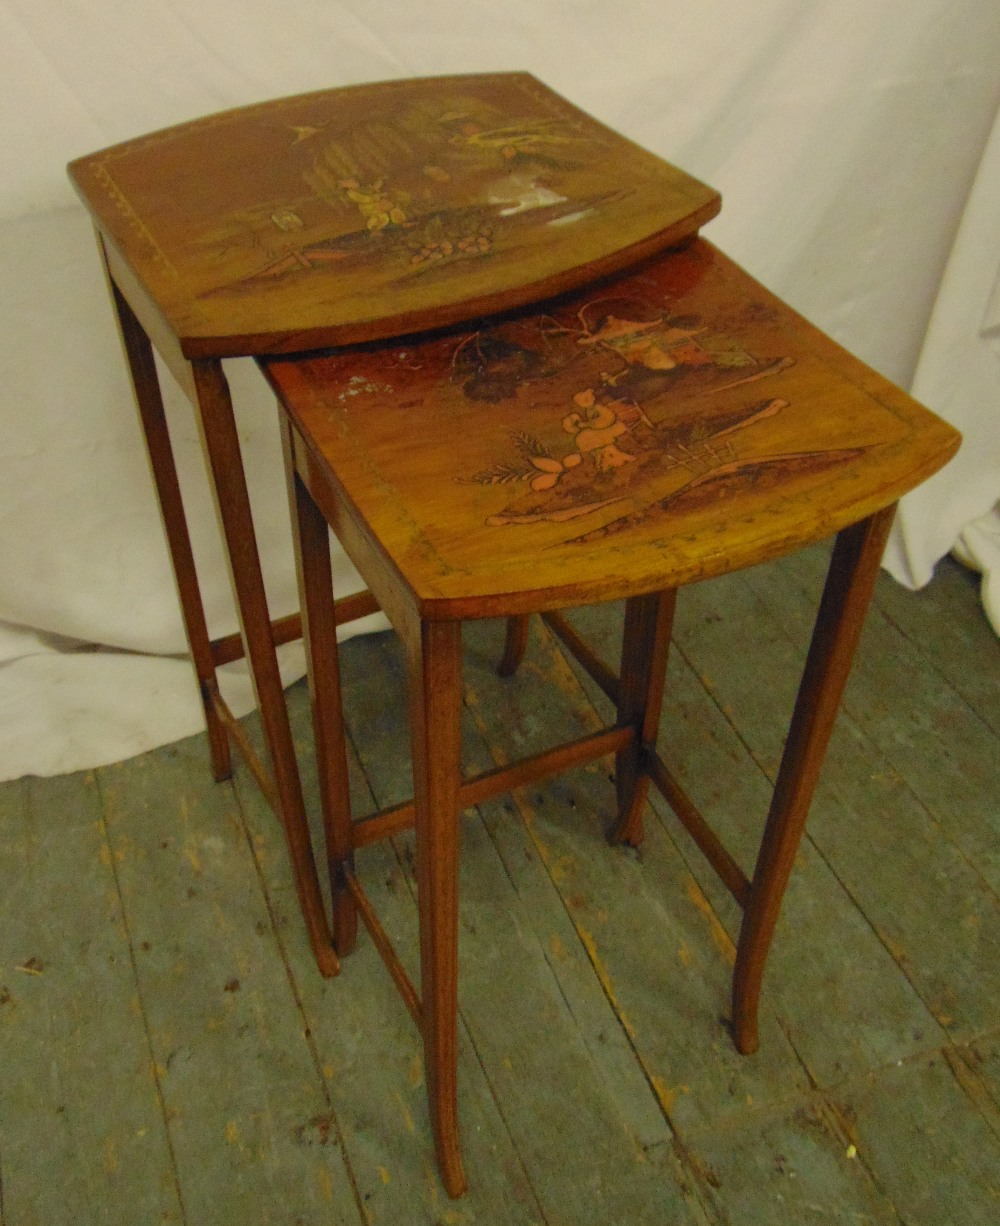 Lot 24 - A nest of two fruitwood side tables, the tops painted with Chinoiserie scenes, 67.5 x 36.5 x 34.5cm